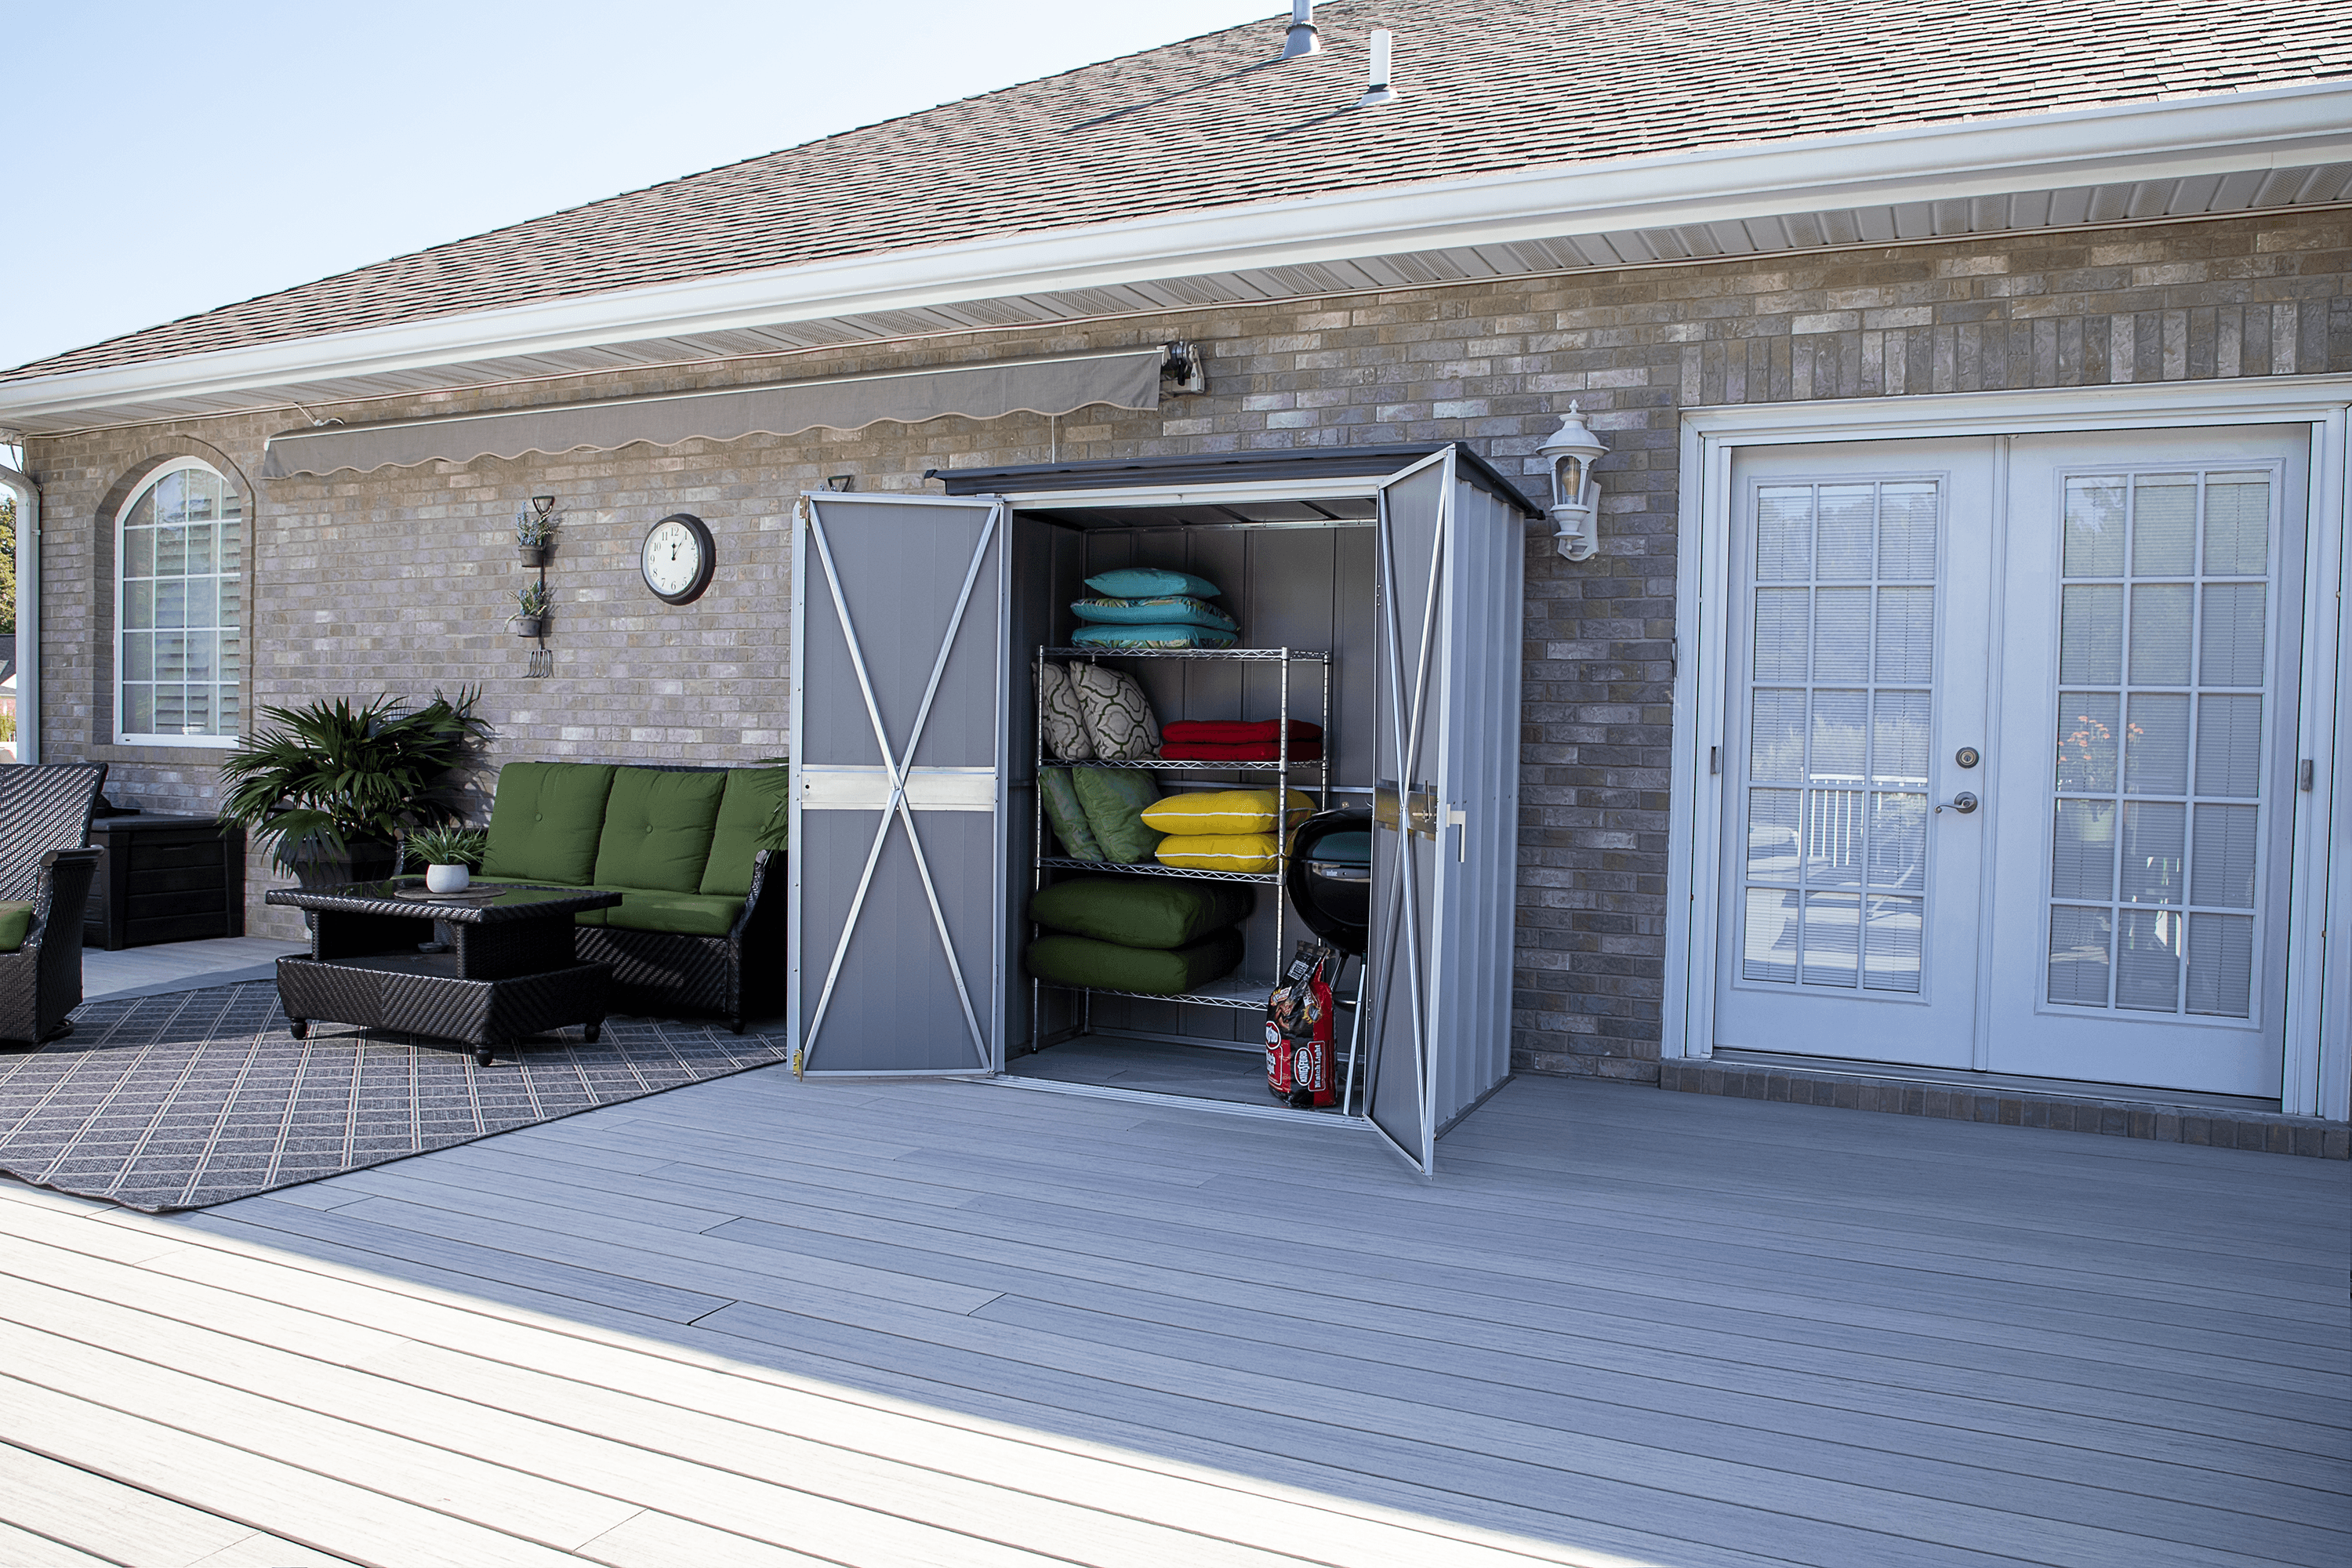 Spacemaker Patio Shed, 5×3, Flute Grey and Anthracite